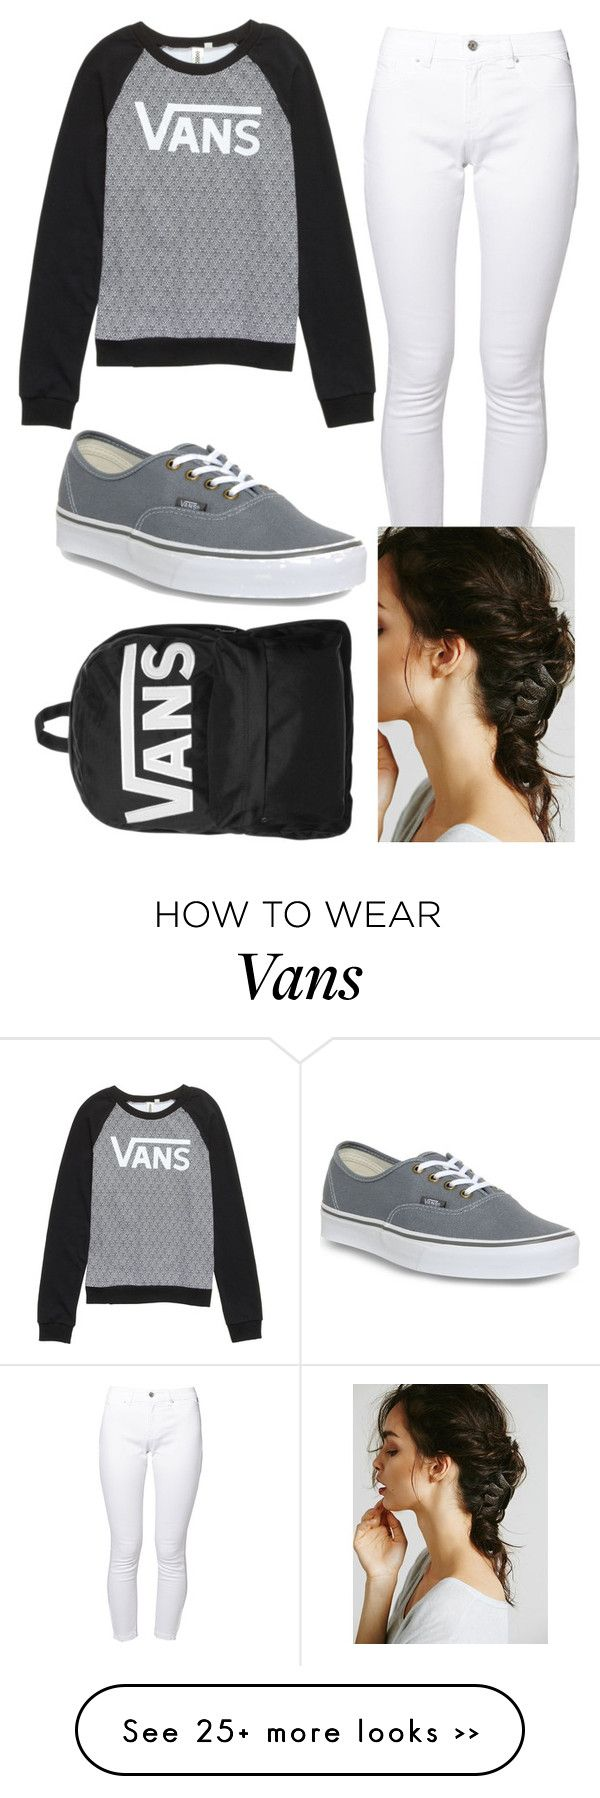 """""""Vans Outfit #1"""" by ashanti-11 on Polyvore"""